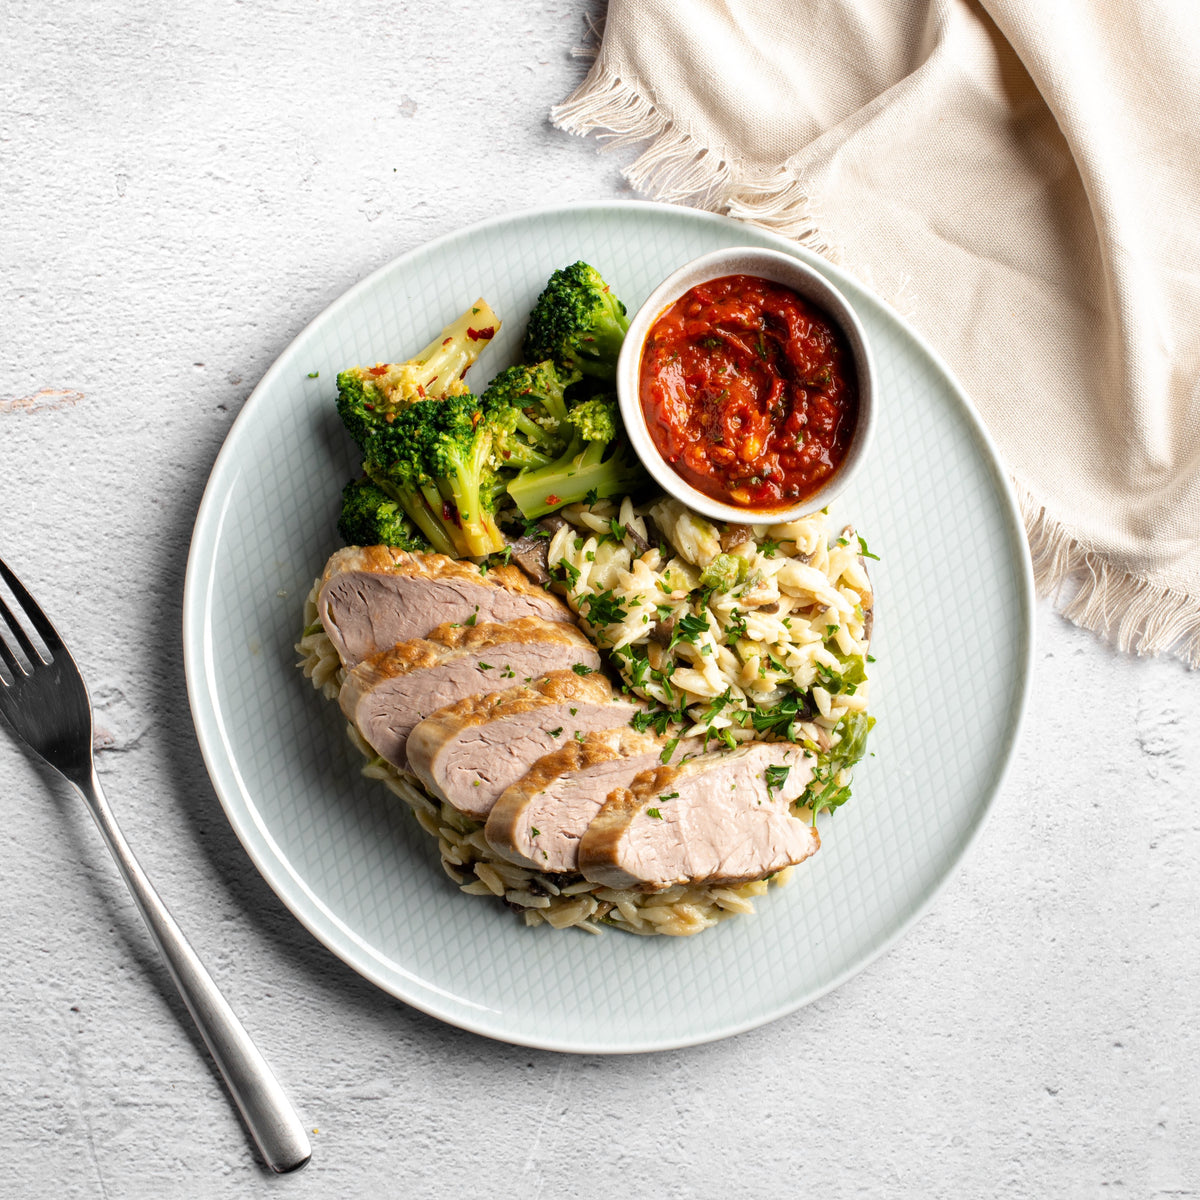 Peri-Peri Pork Tenderloin with Pecorino Romano Orzo and Spicy Chili Broccoli - Homebistro